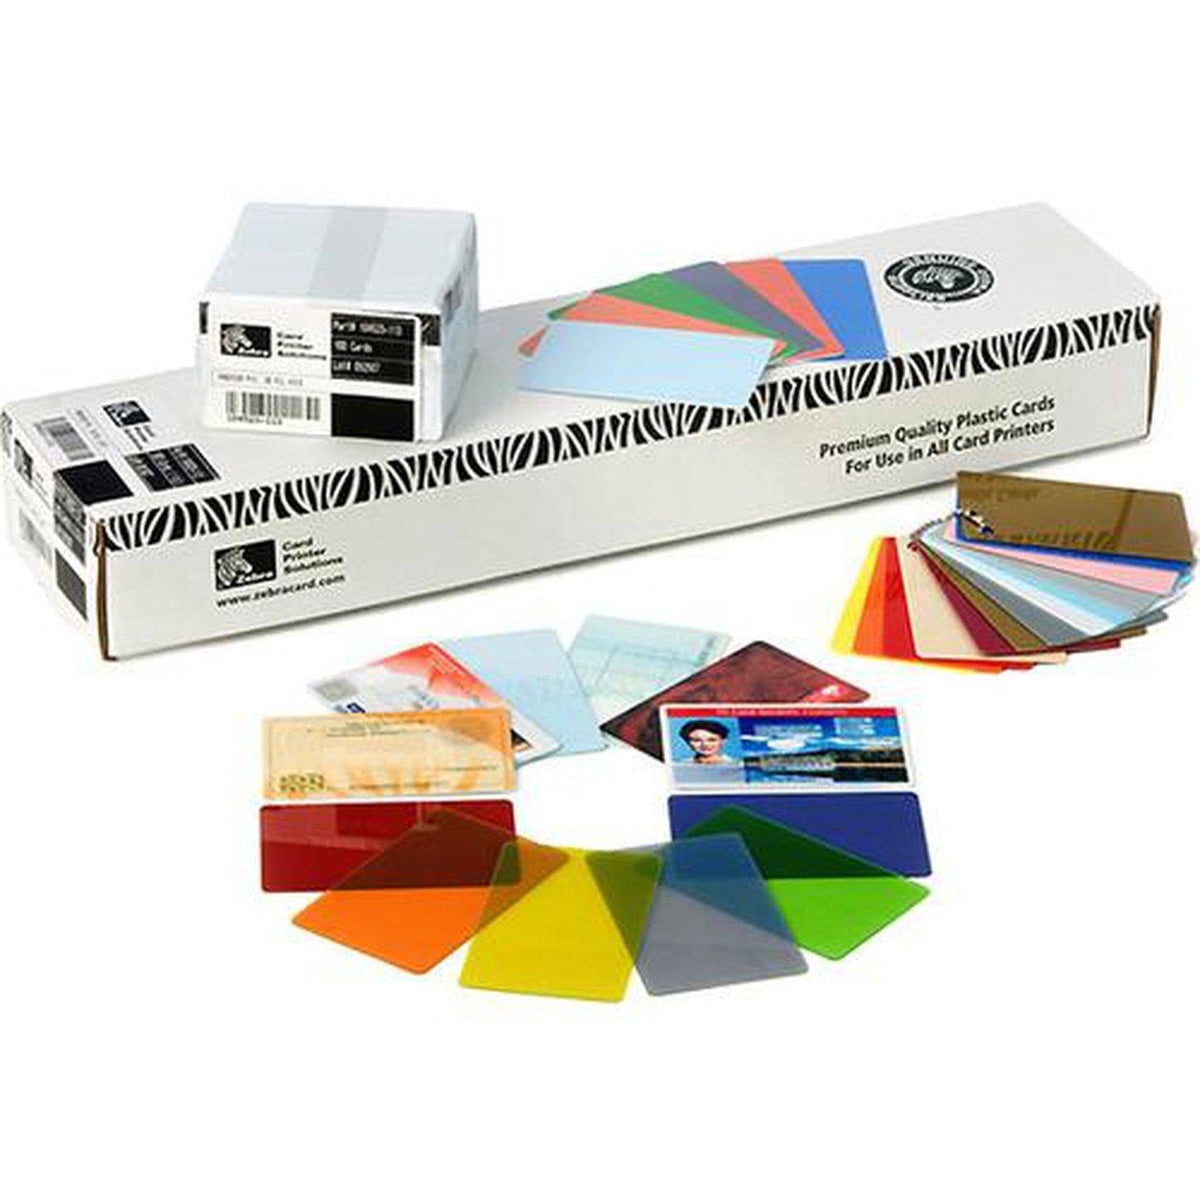 Zebra Premier Colour PVC Cards, Gold Metallic | 104523-133